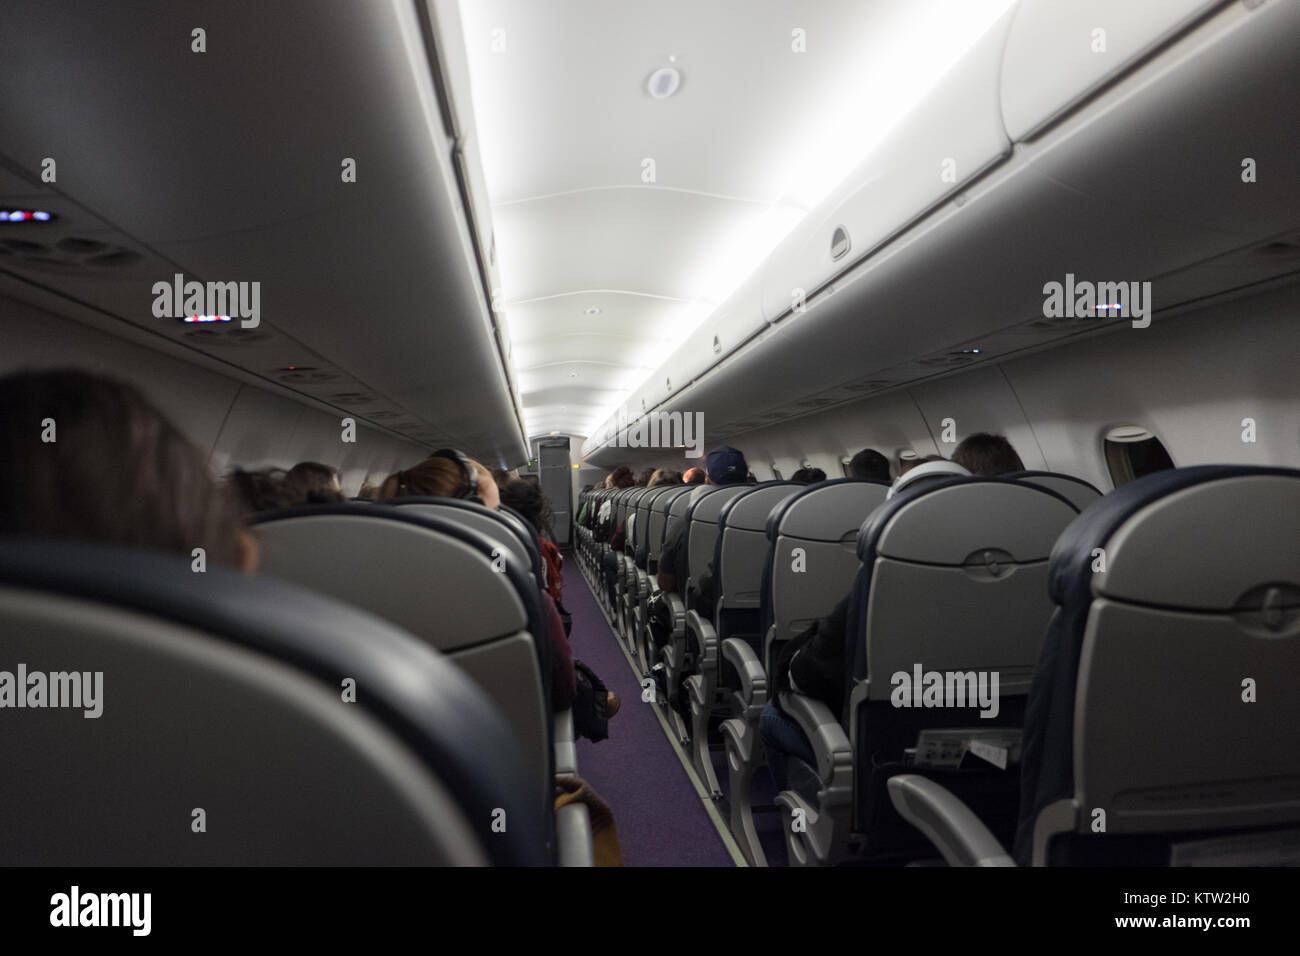 safety instructions in flight